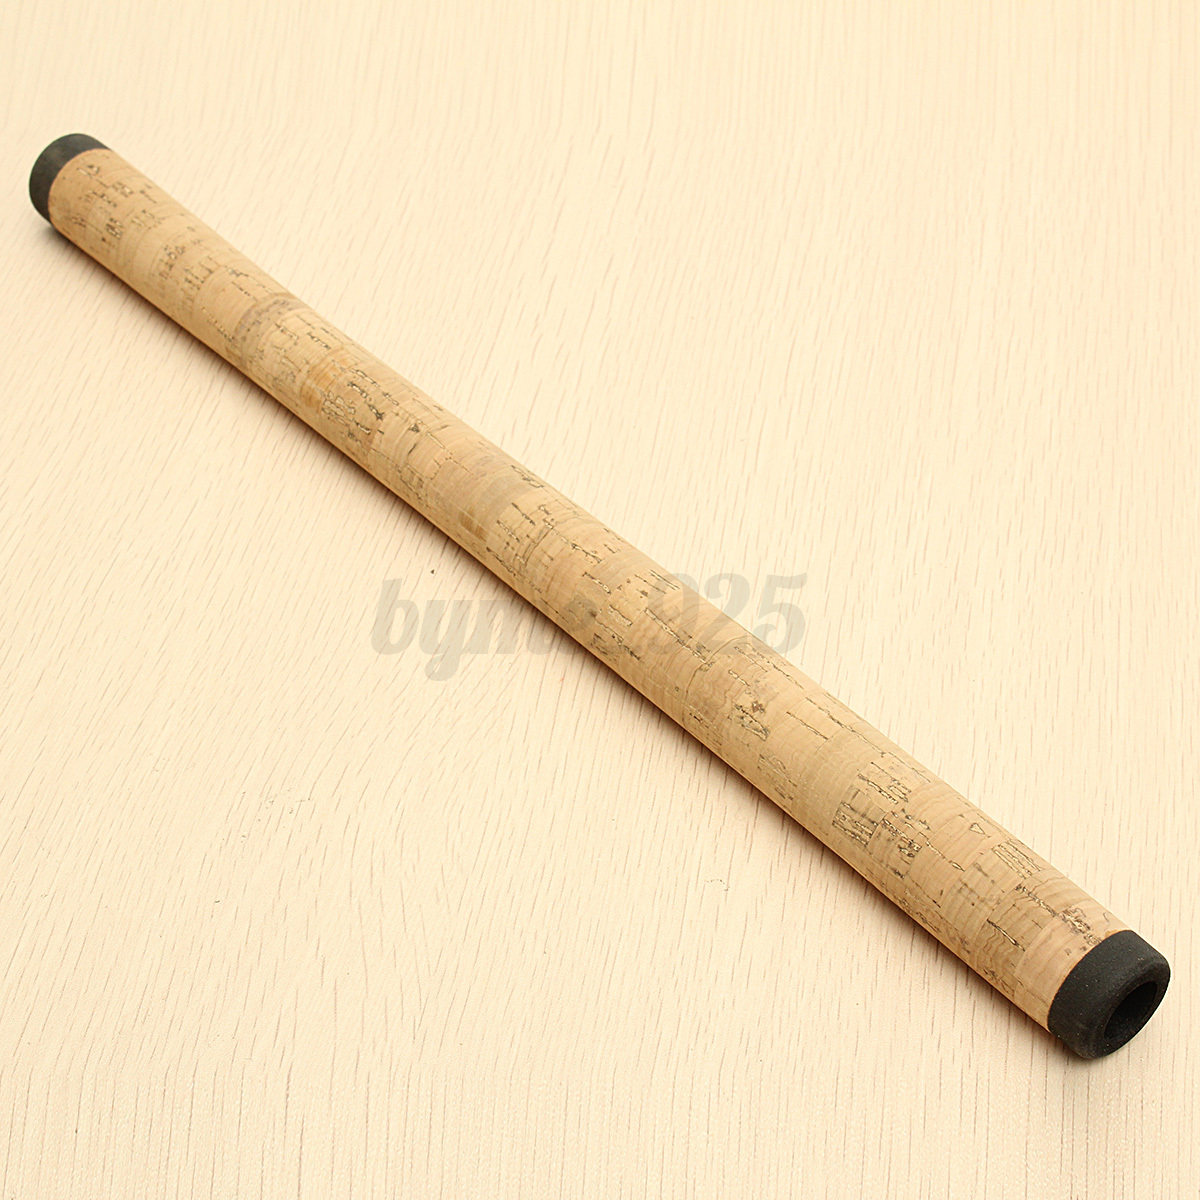 390mm replacement fishing rod handle composite cork grip for Fishing reel handles replacement